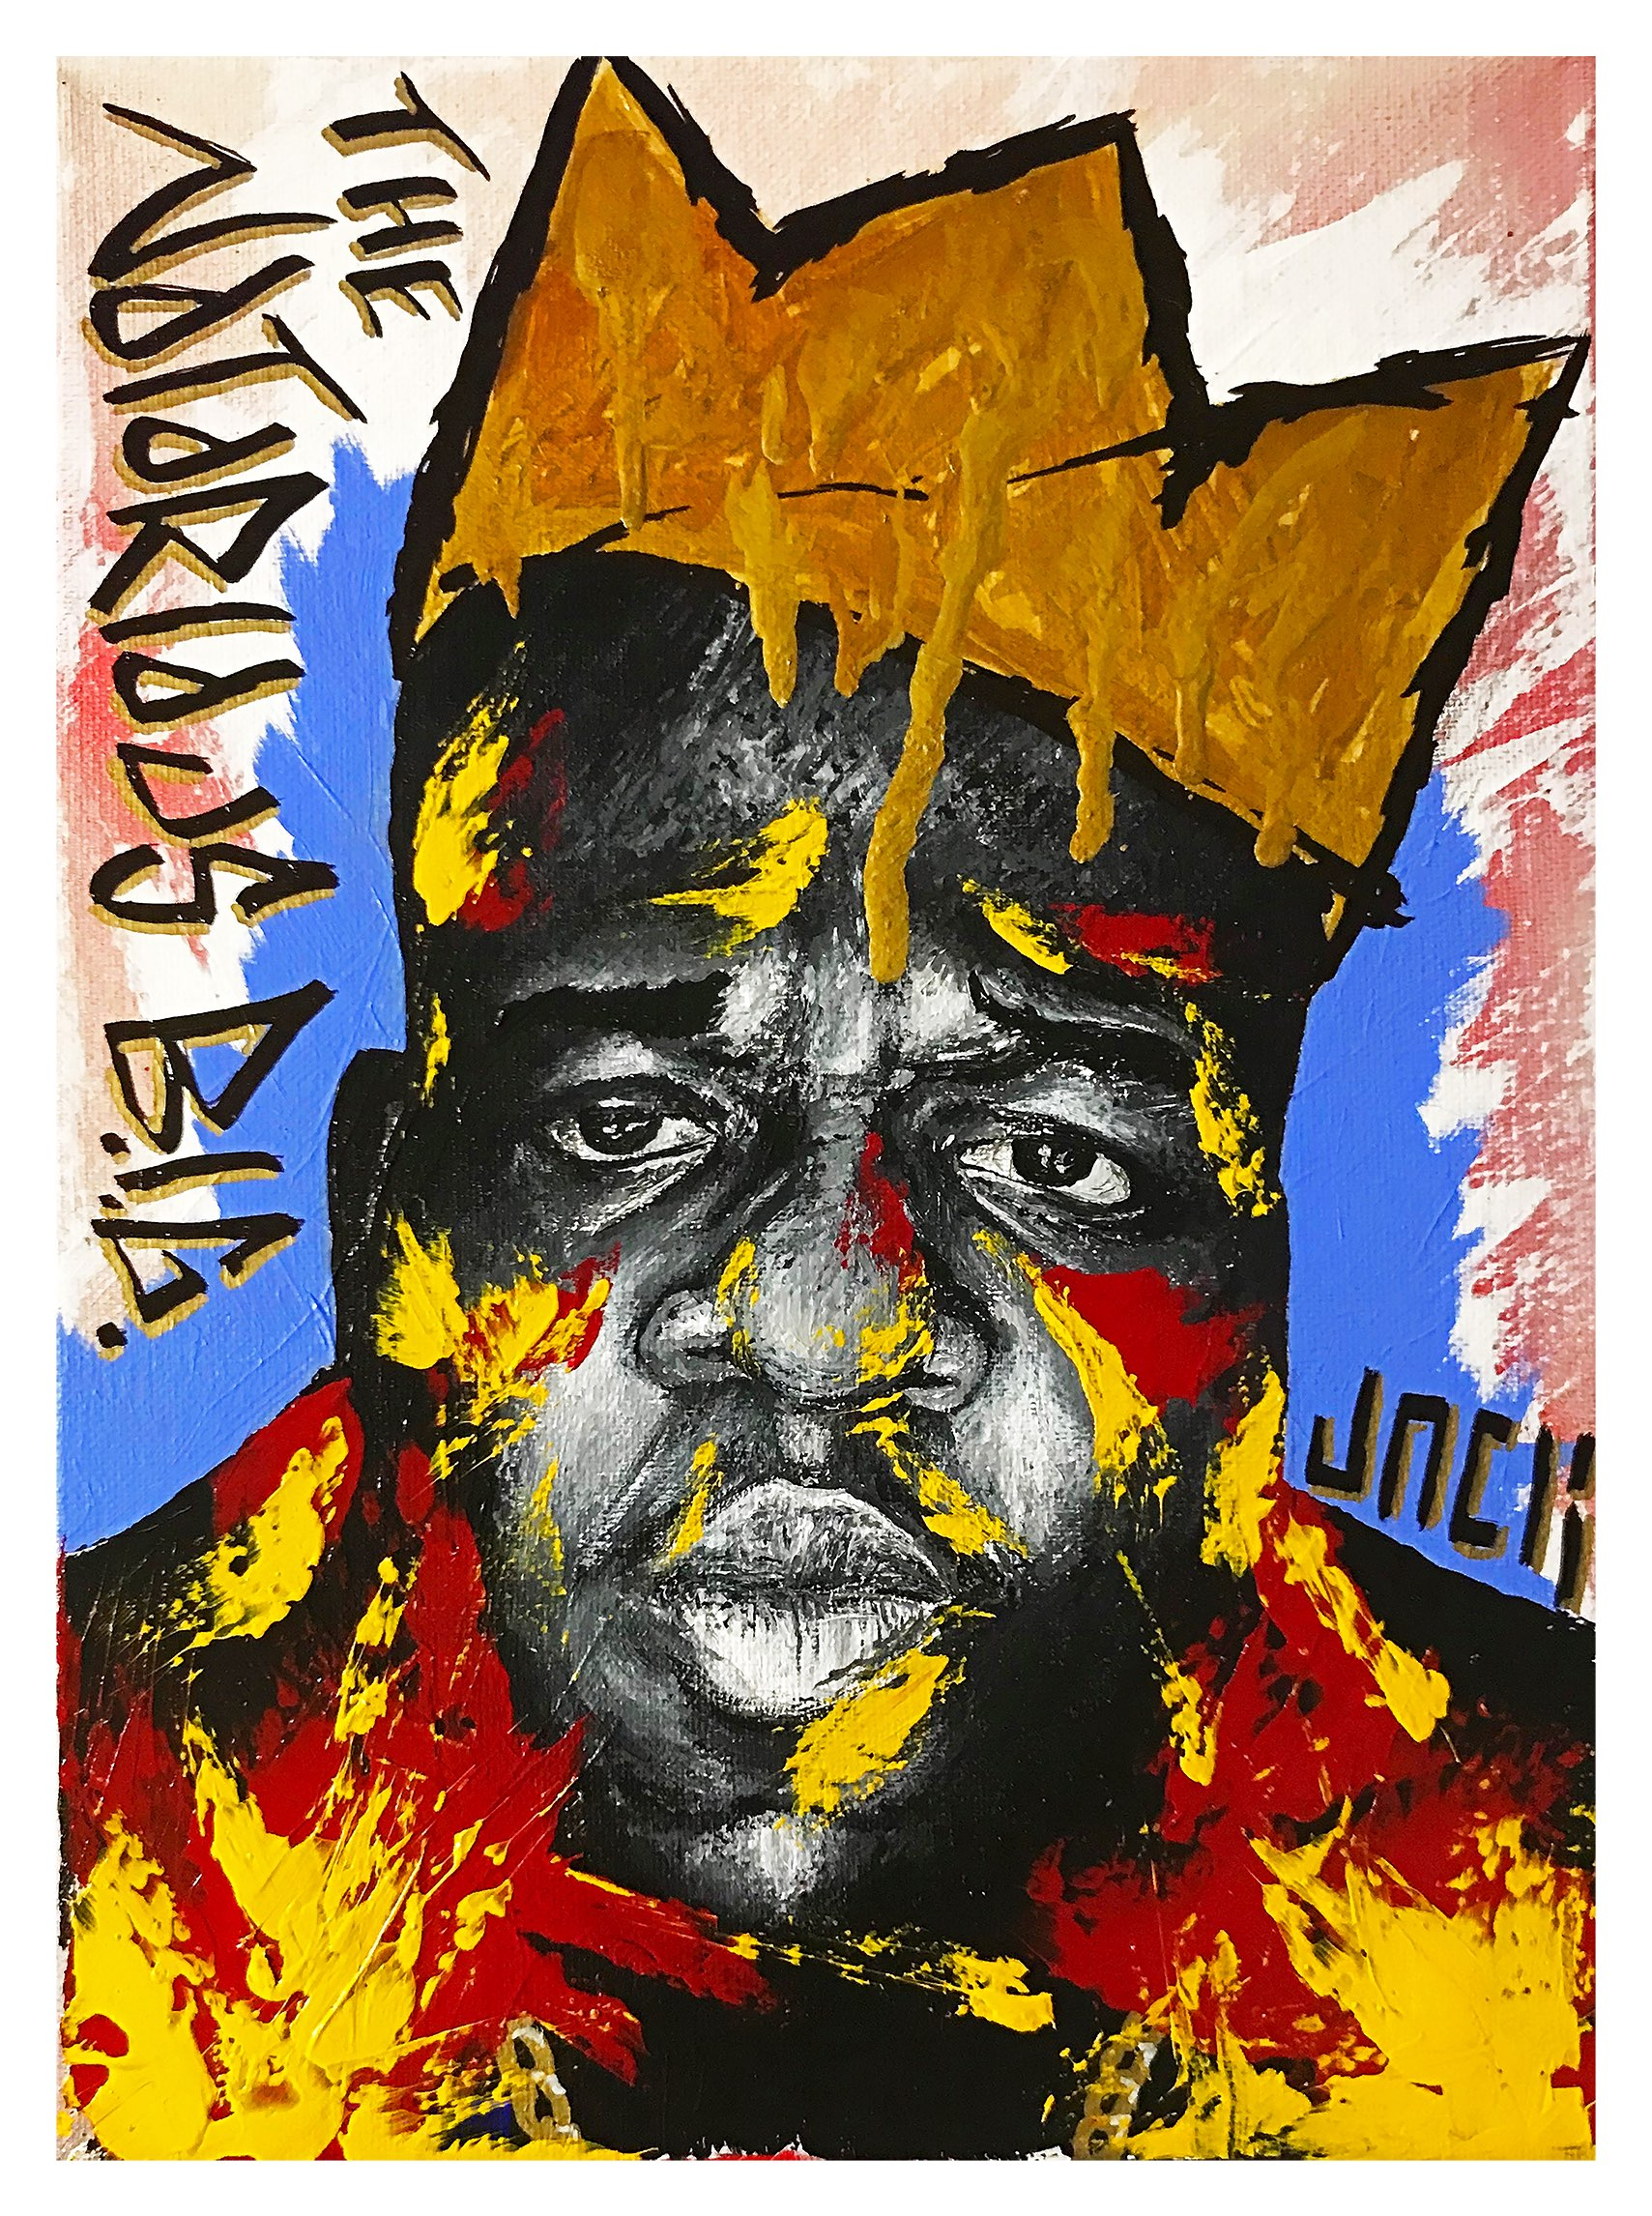 SOLD – The Notorious B.I.G.